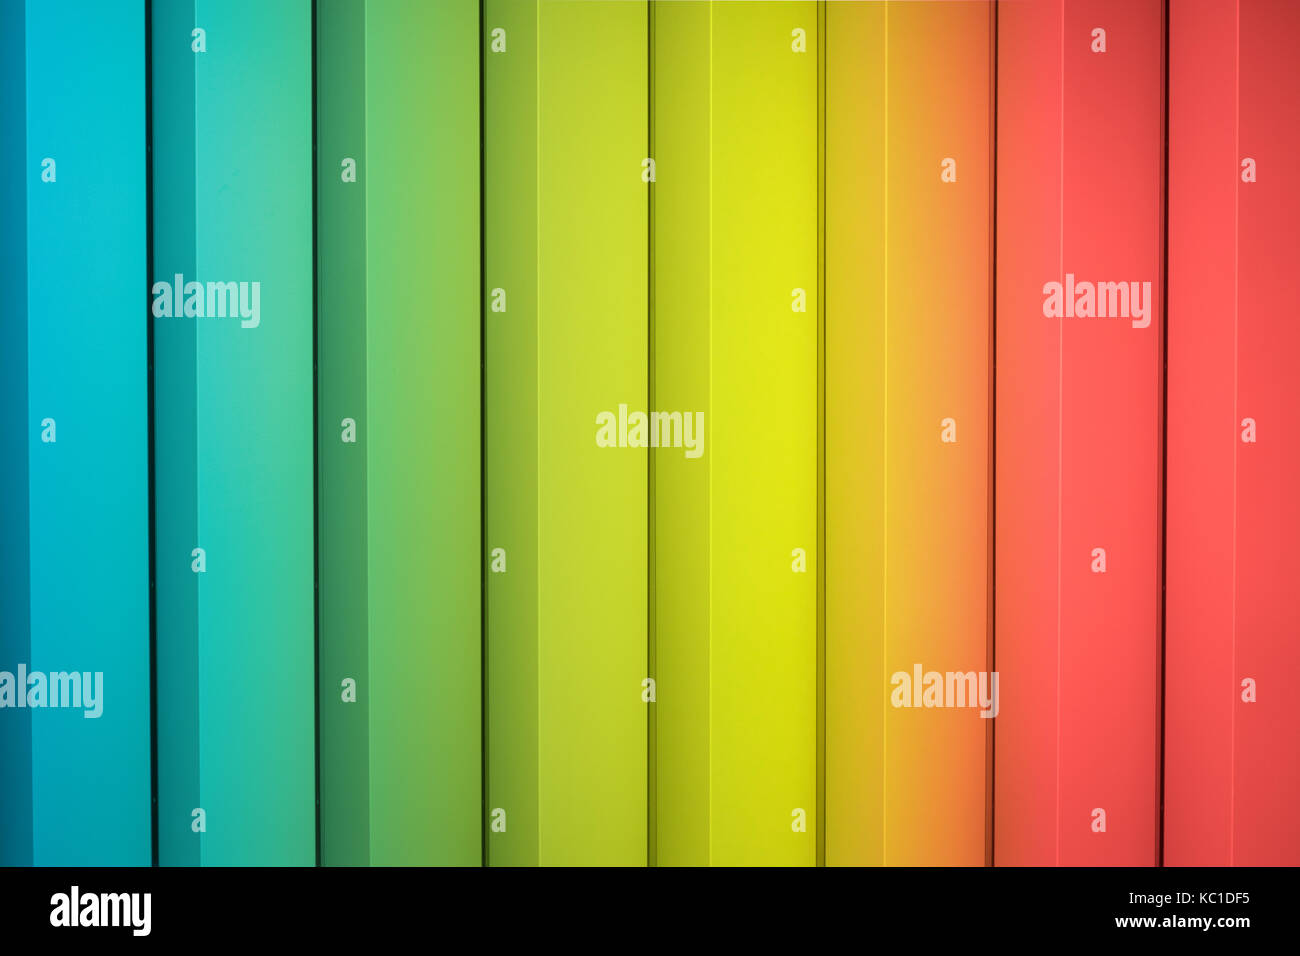 abstract colorful  background - rainbow colors, striped - Stock Image